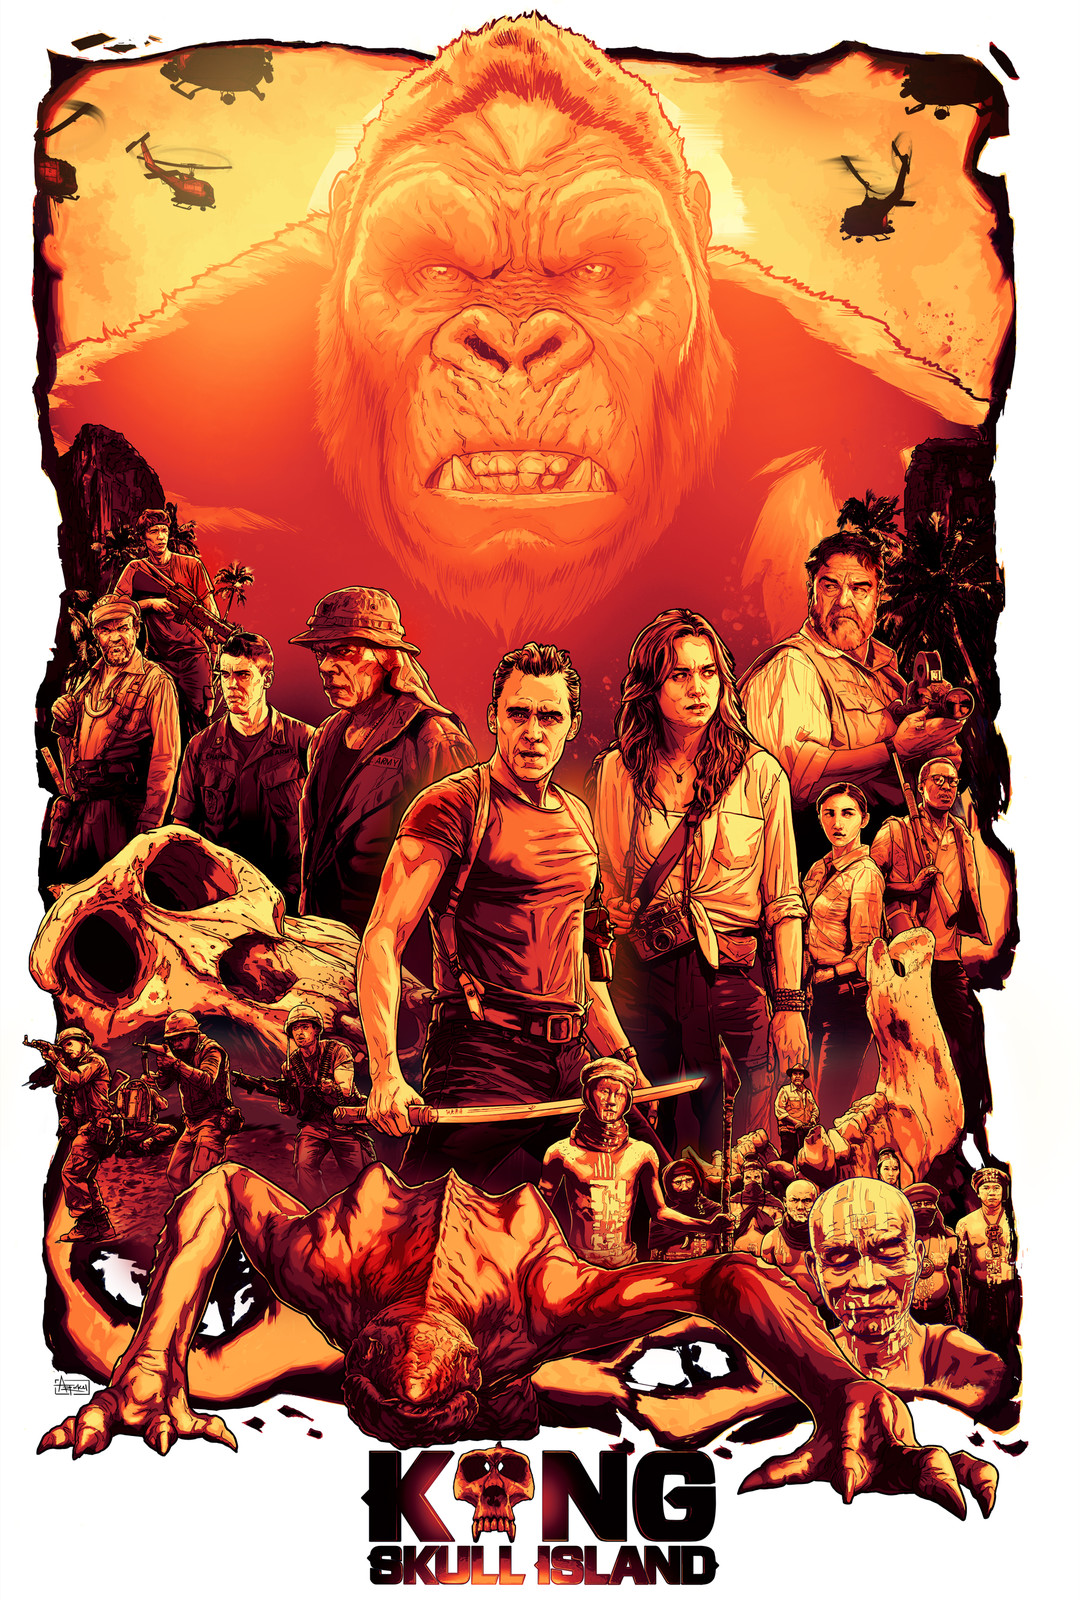 KONG Skull Island Alternative movie poster design (Fanart)